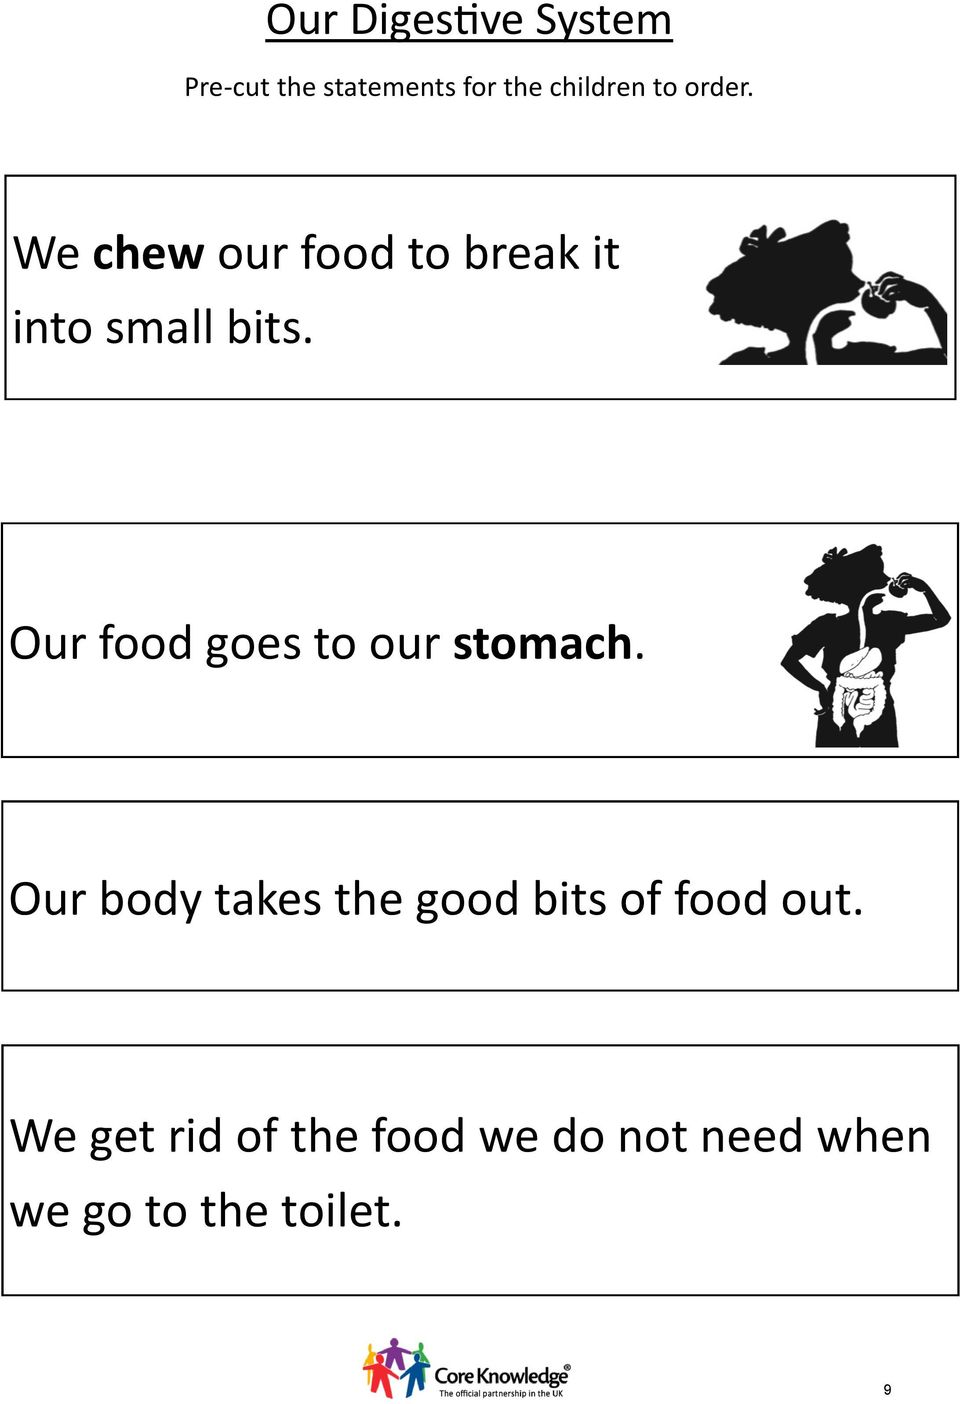 Our food goes to our stomach.